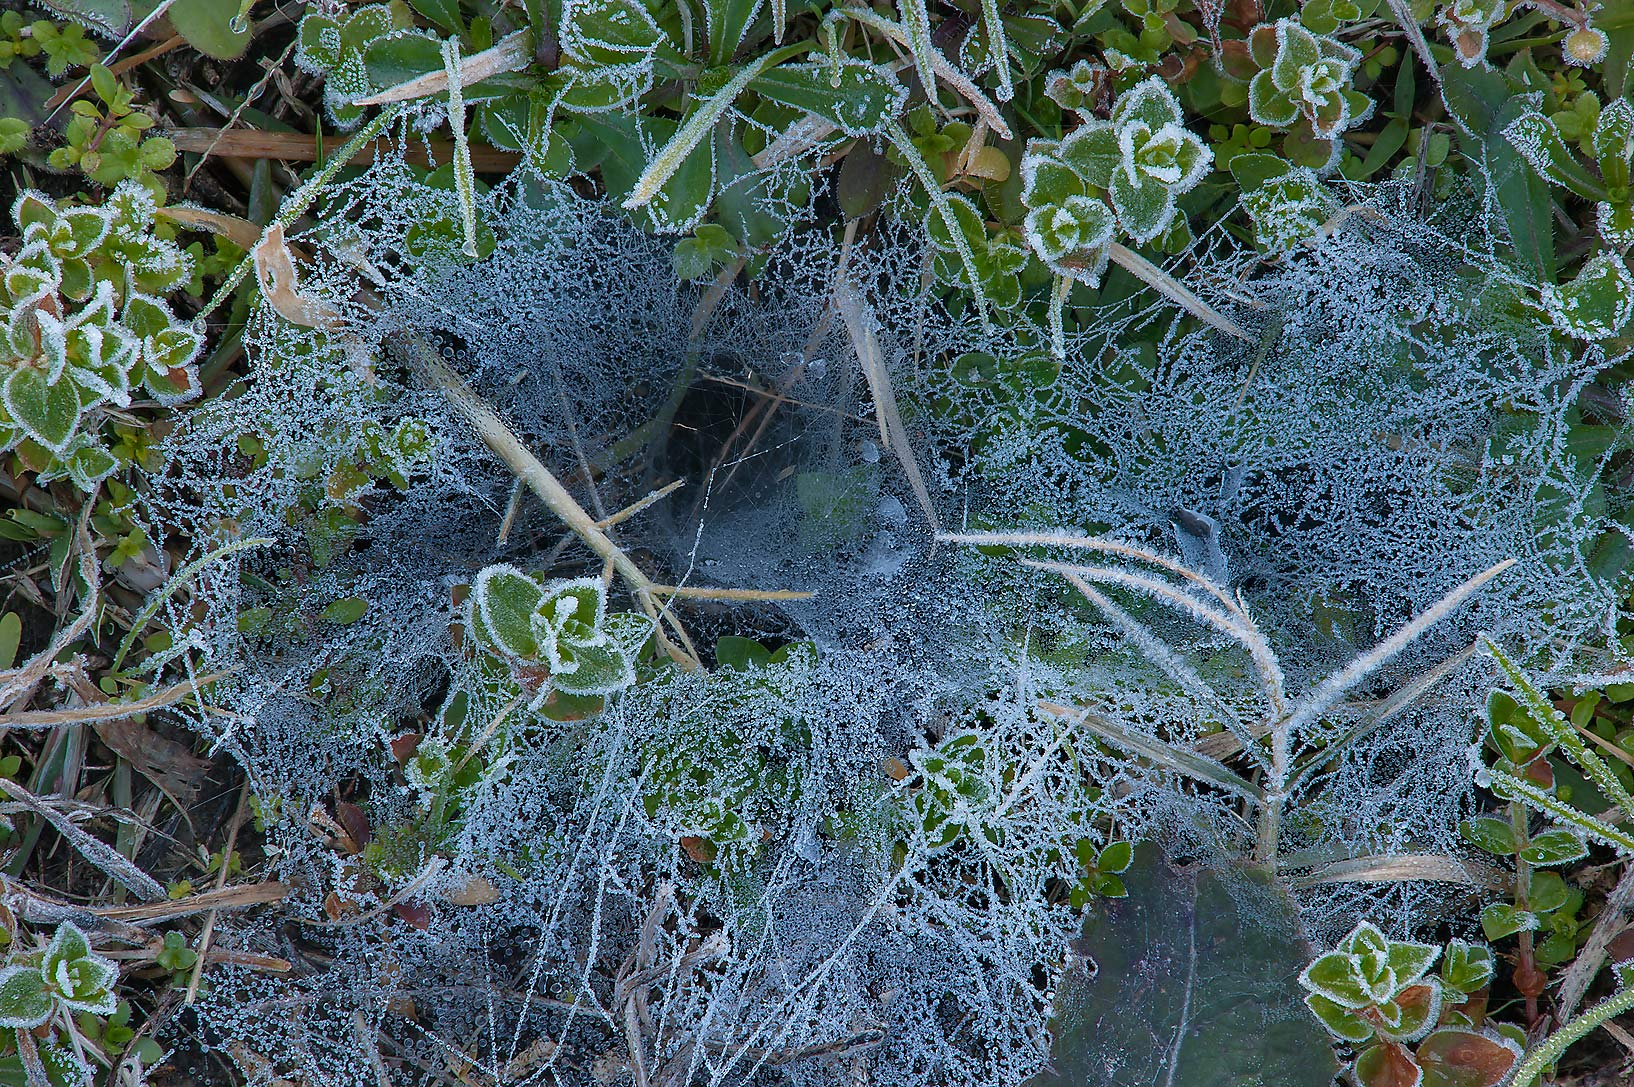 Funnel spider web in freeze on ground in TAMU...M University. College Station, Texas